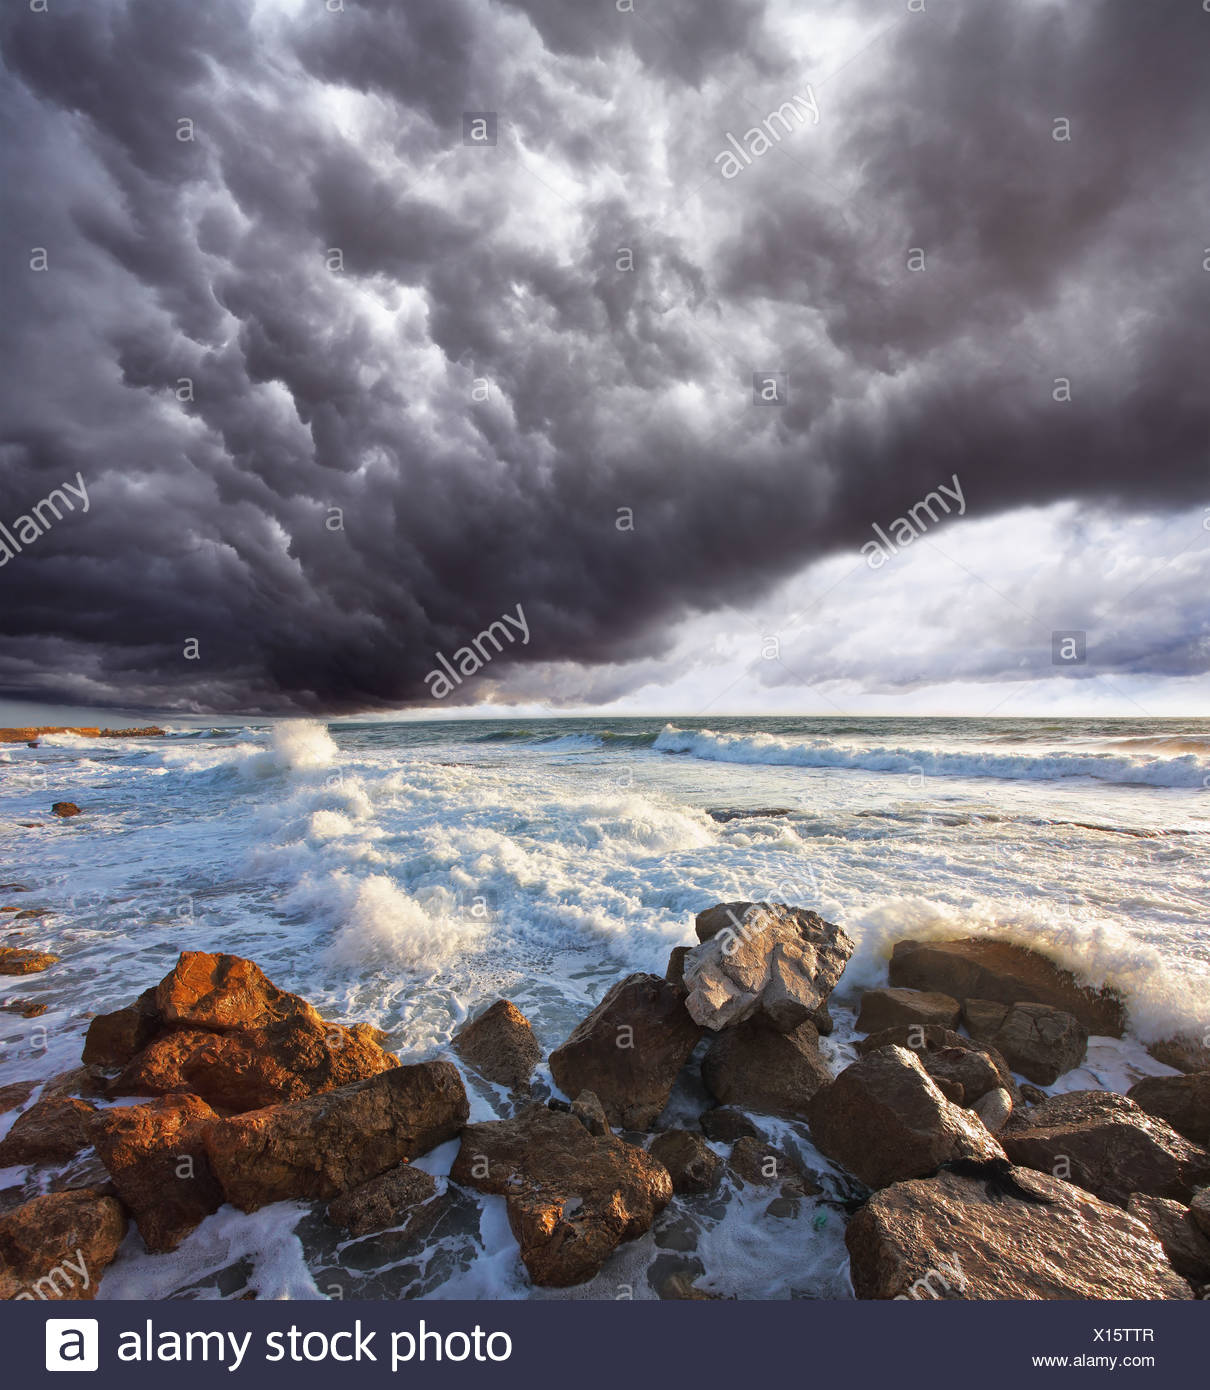 The storm cloud over the raging surf - Stock Image